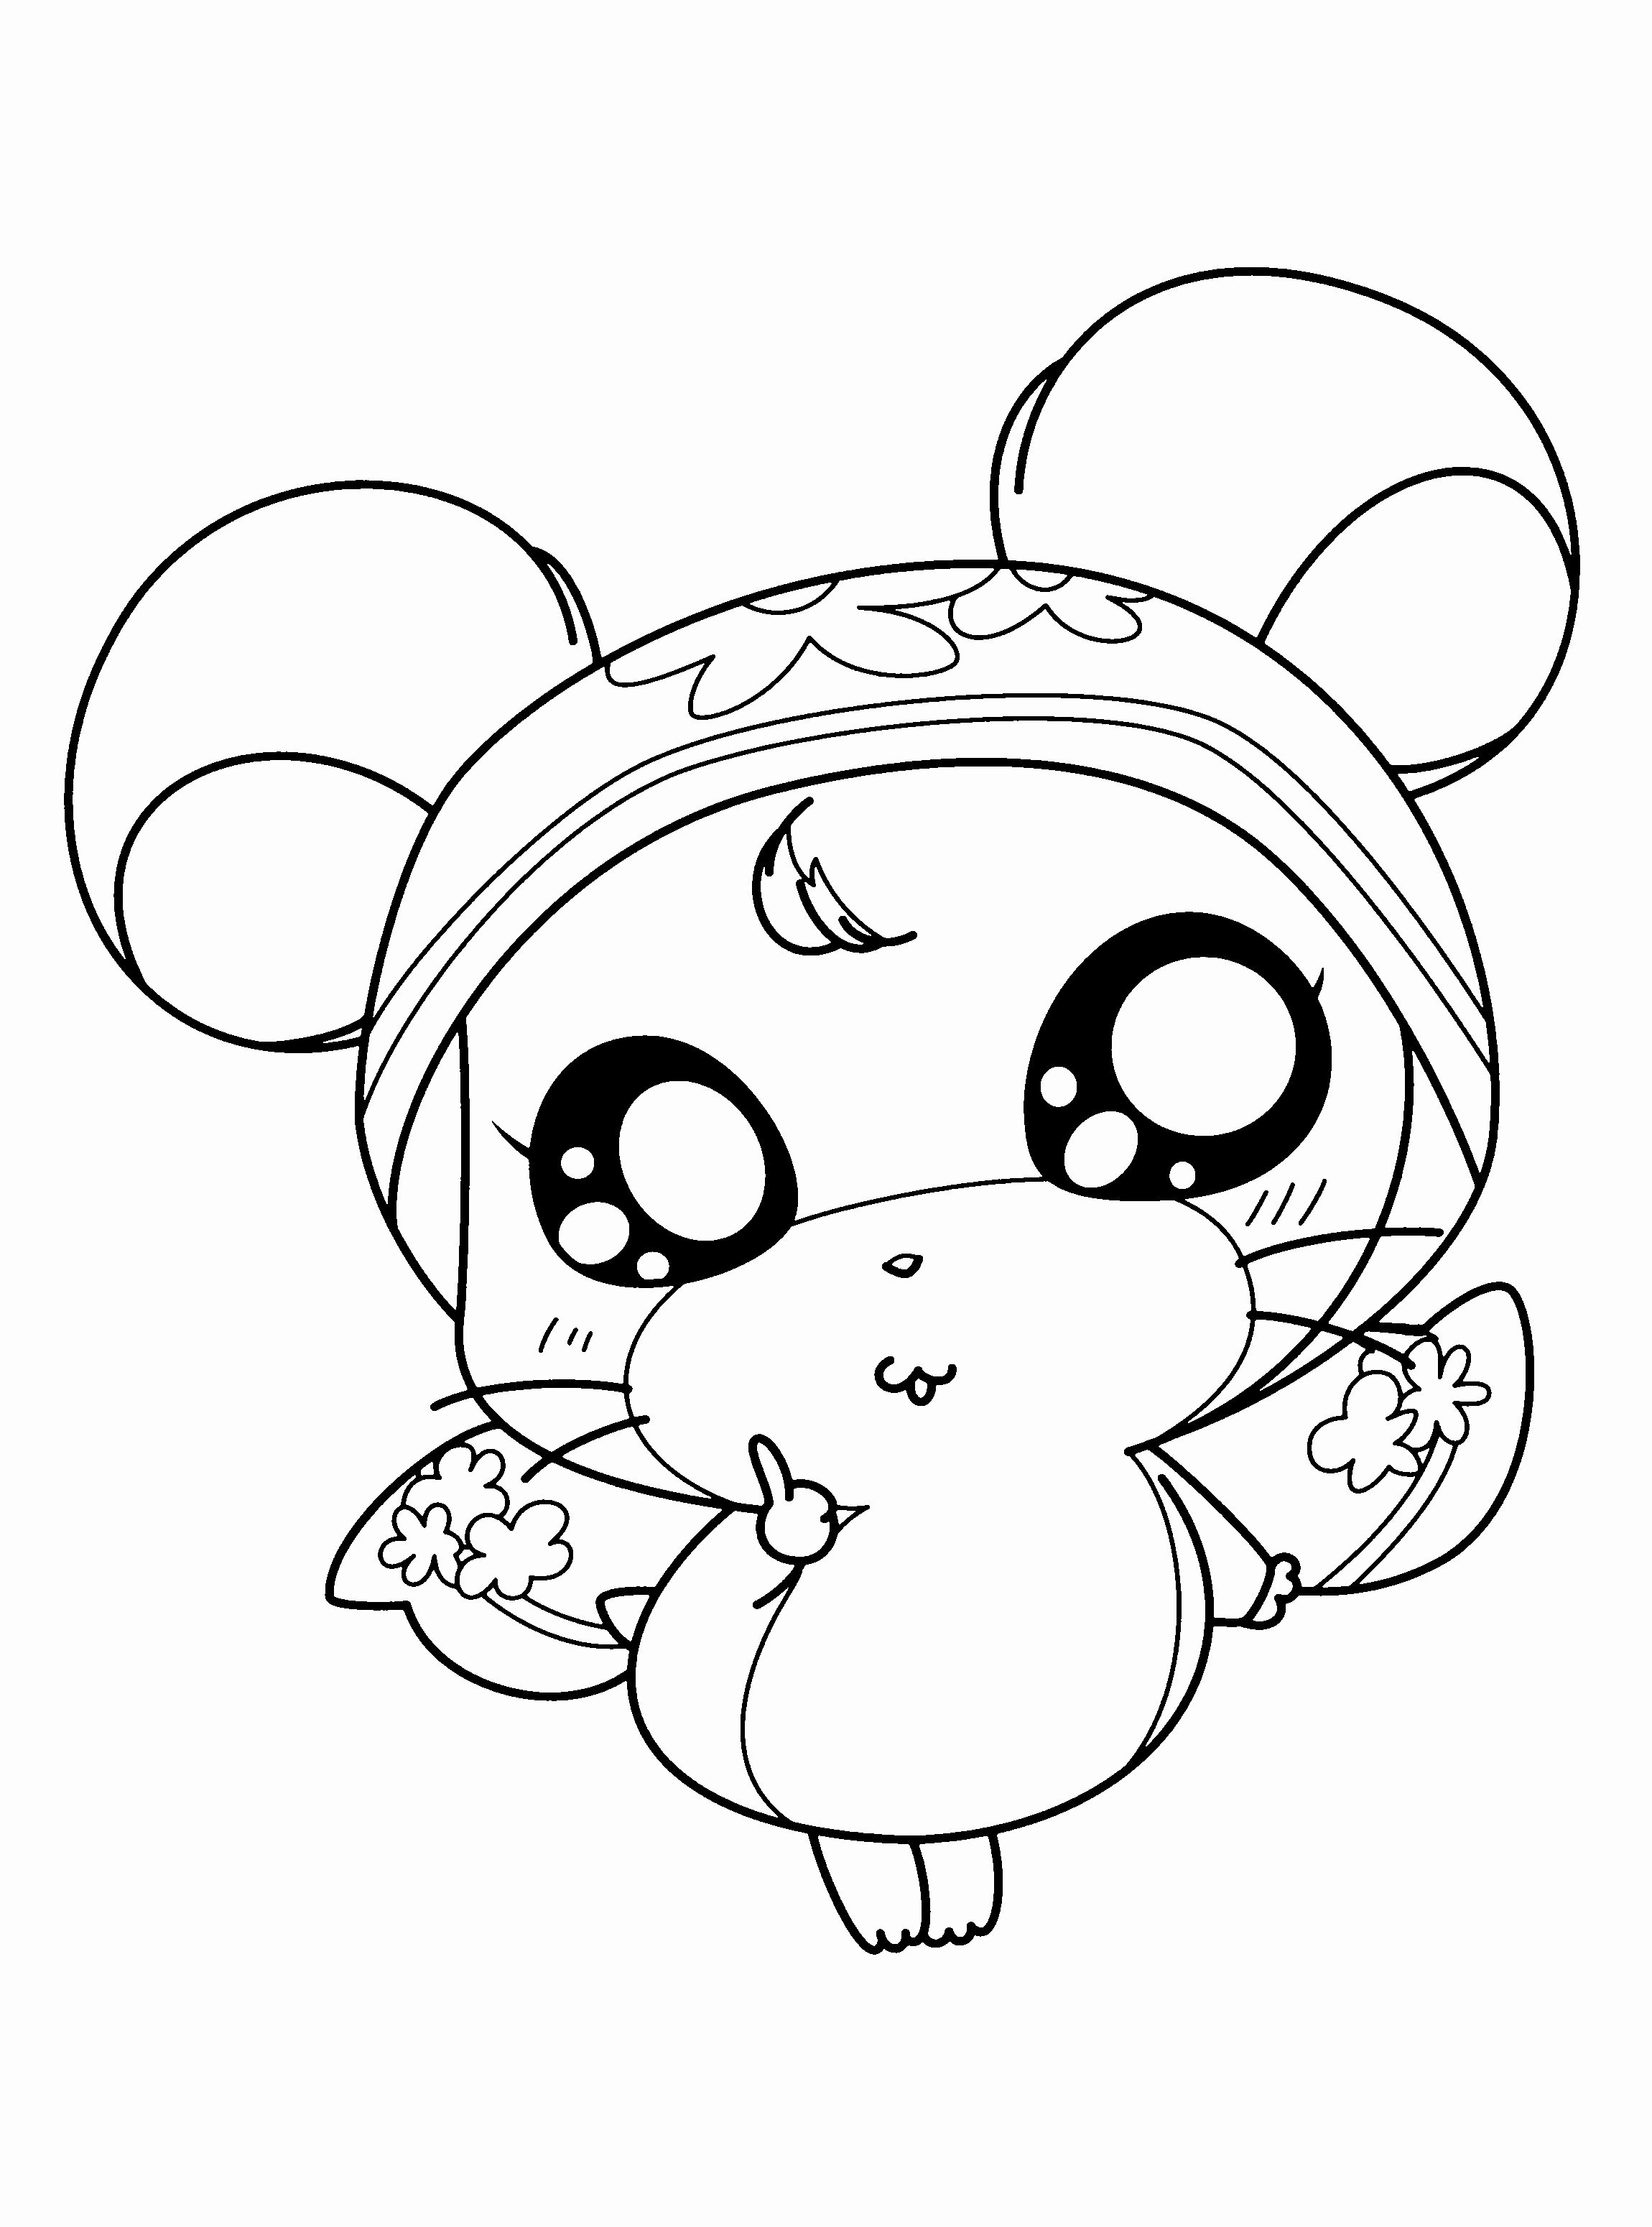 Cute Halloween Coloring Pages Cute Halloween Coloring Pages For Kids Luxury Photos Cool Halloween